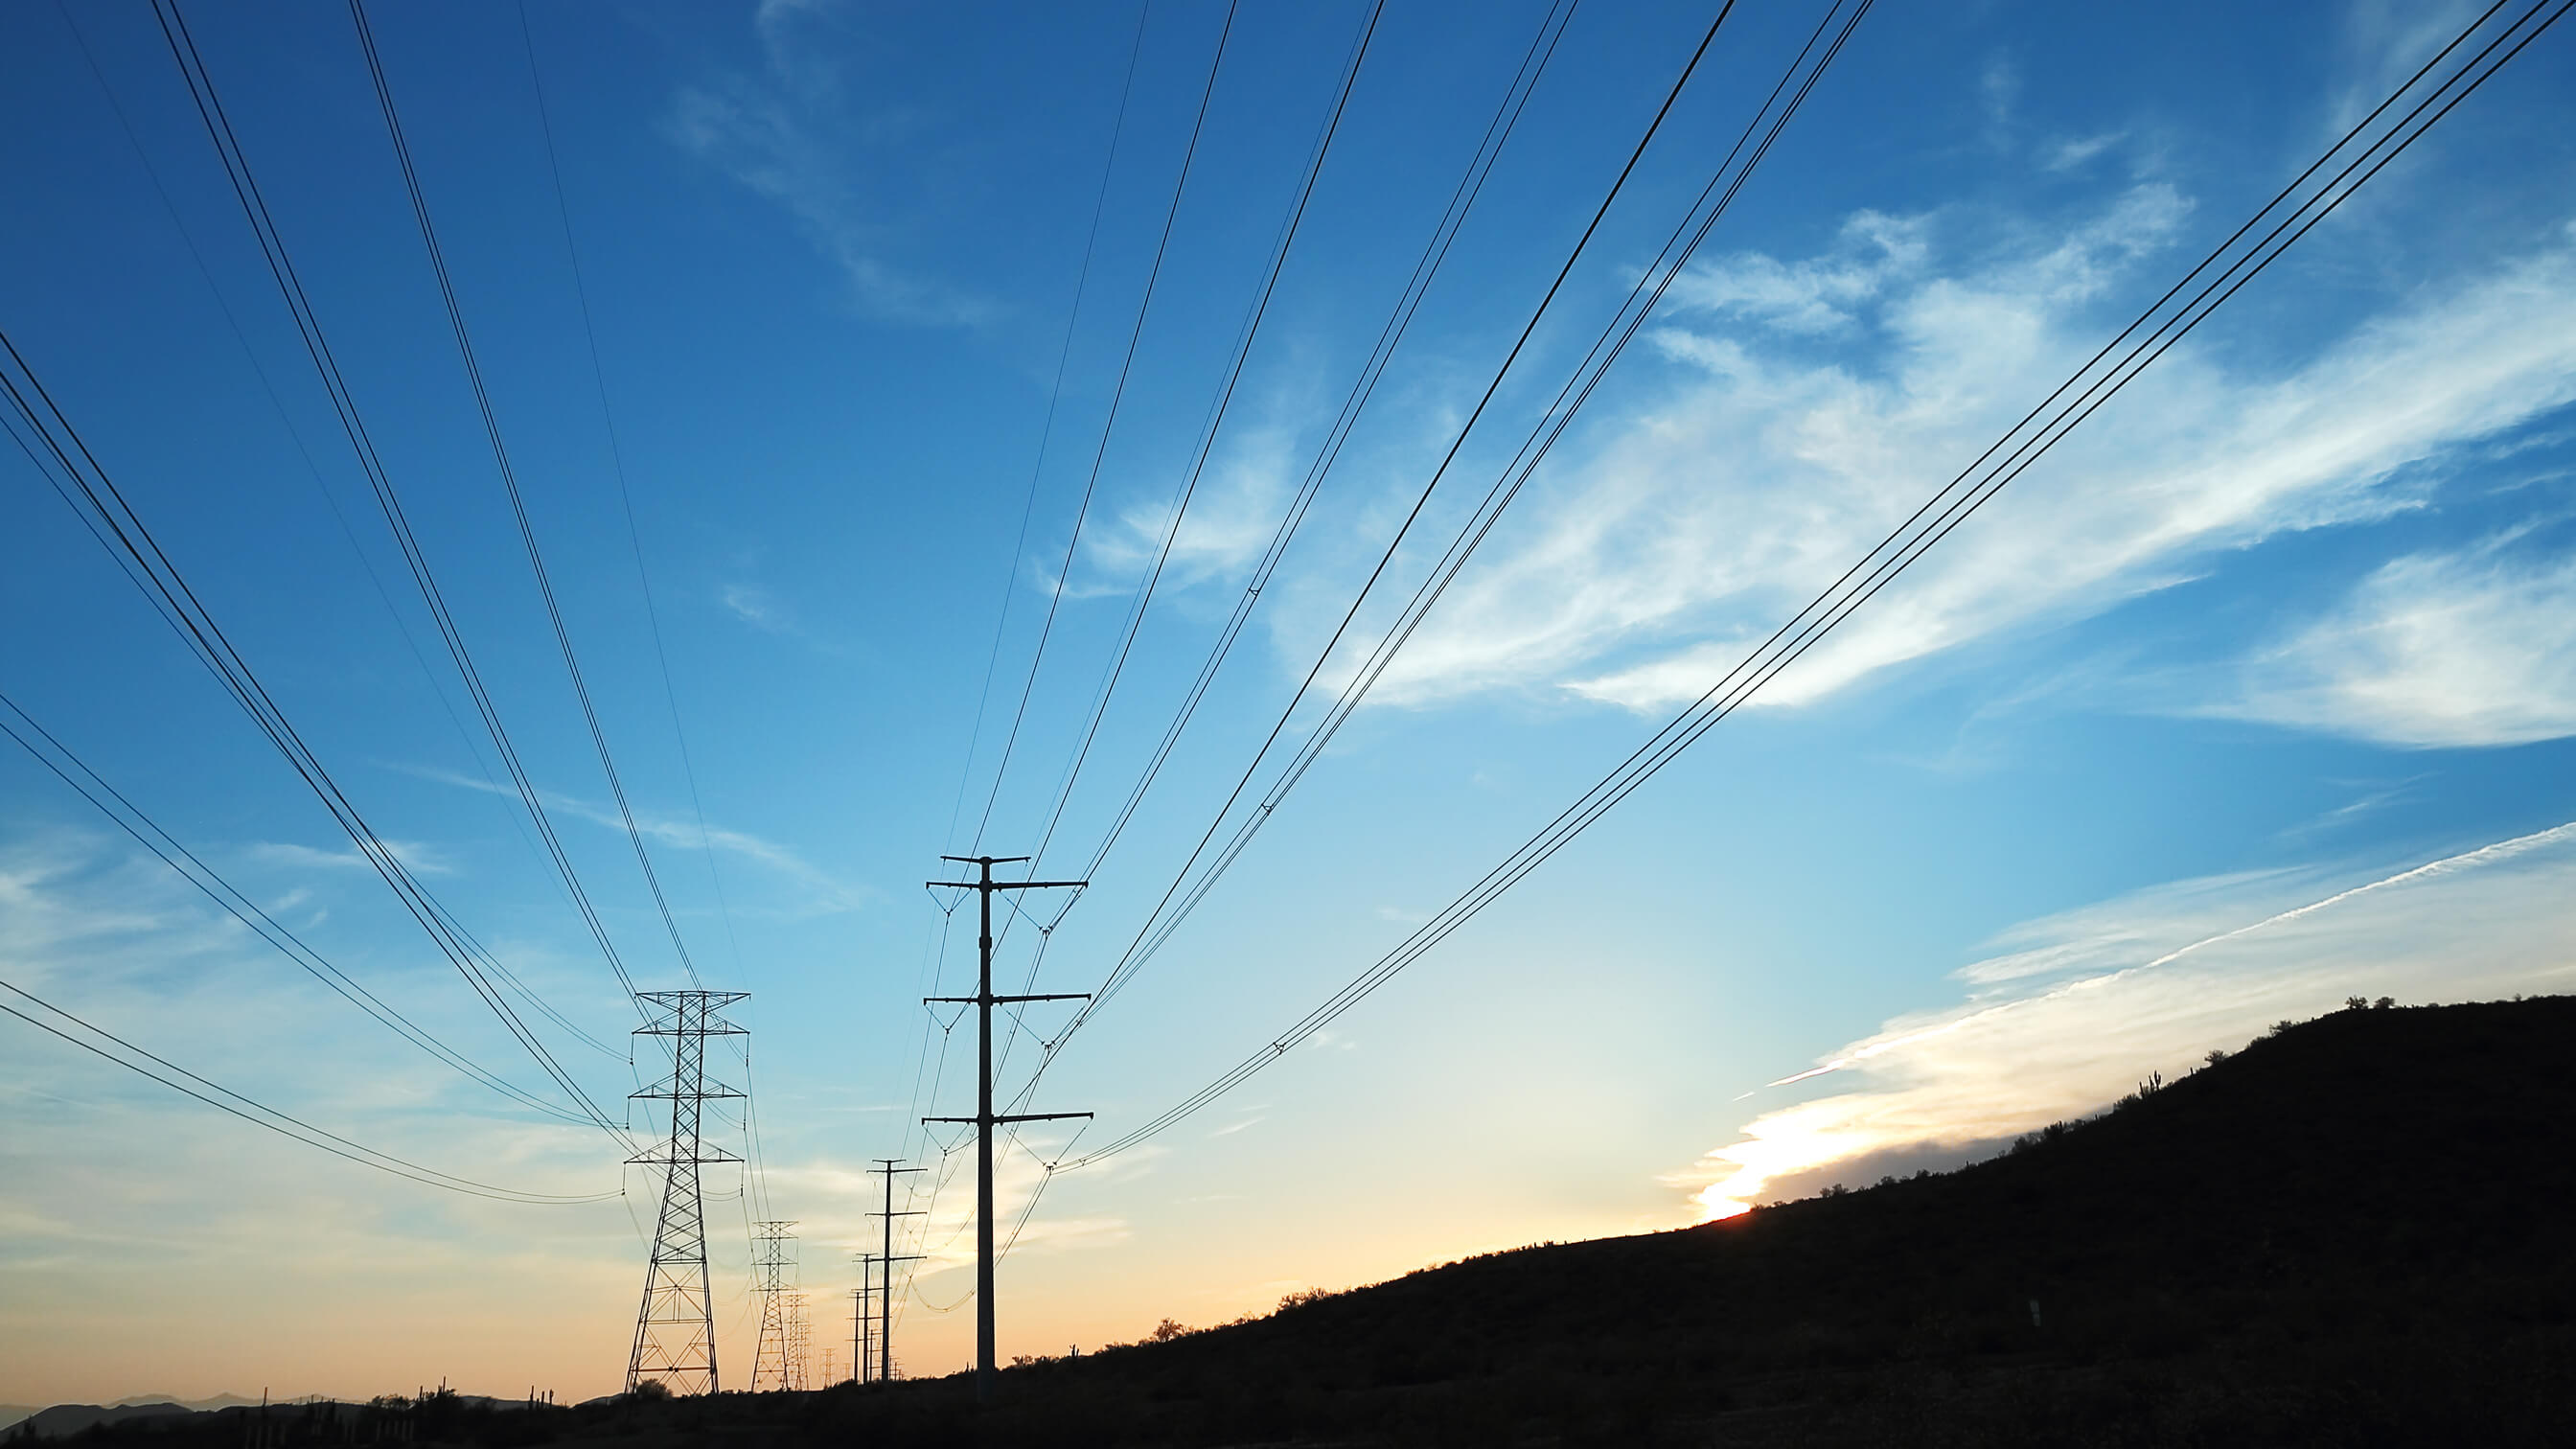 Transmission towers and power lines at sunset